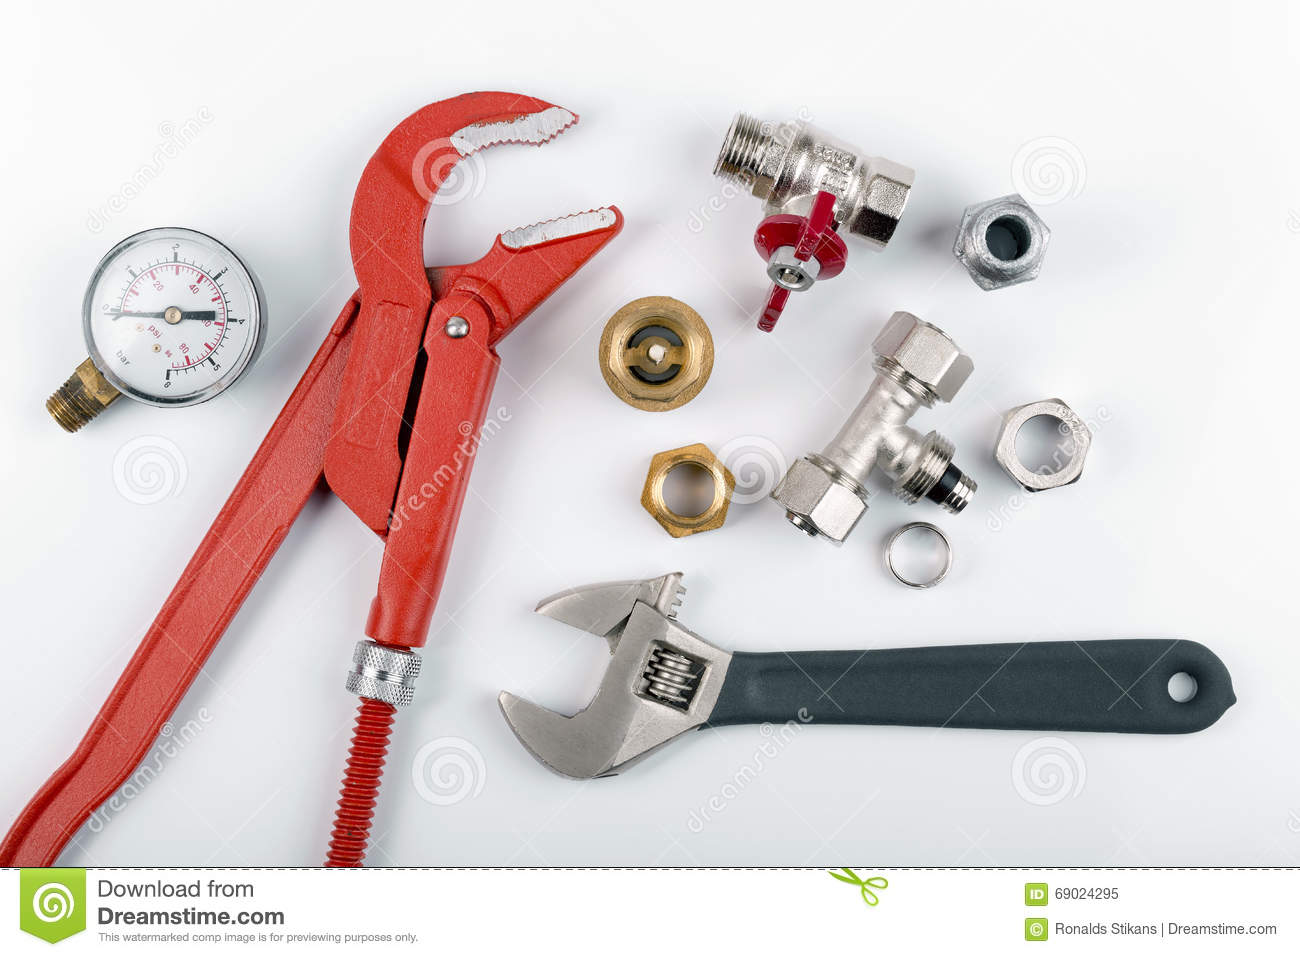 Plumbing Tools And Equimpent On White Stock Image - Image ...